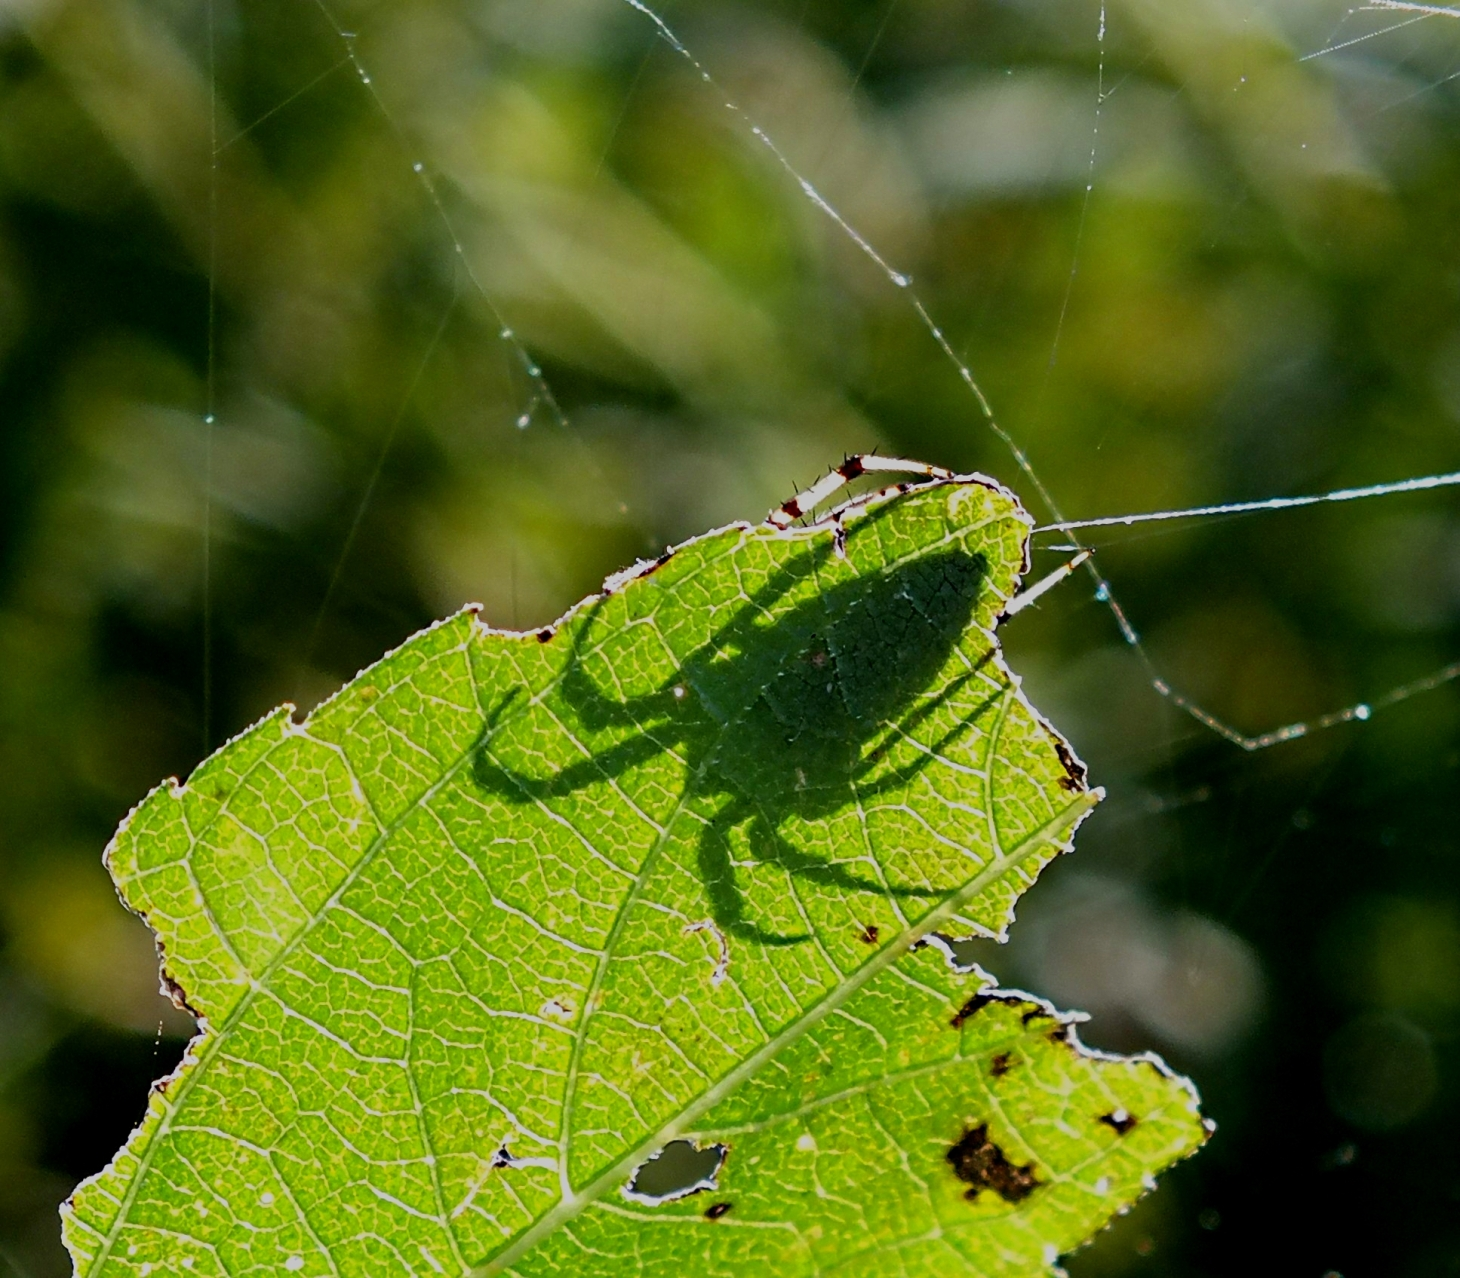 Spider Silhouette.  Photo by Thomas Peace 2014